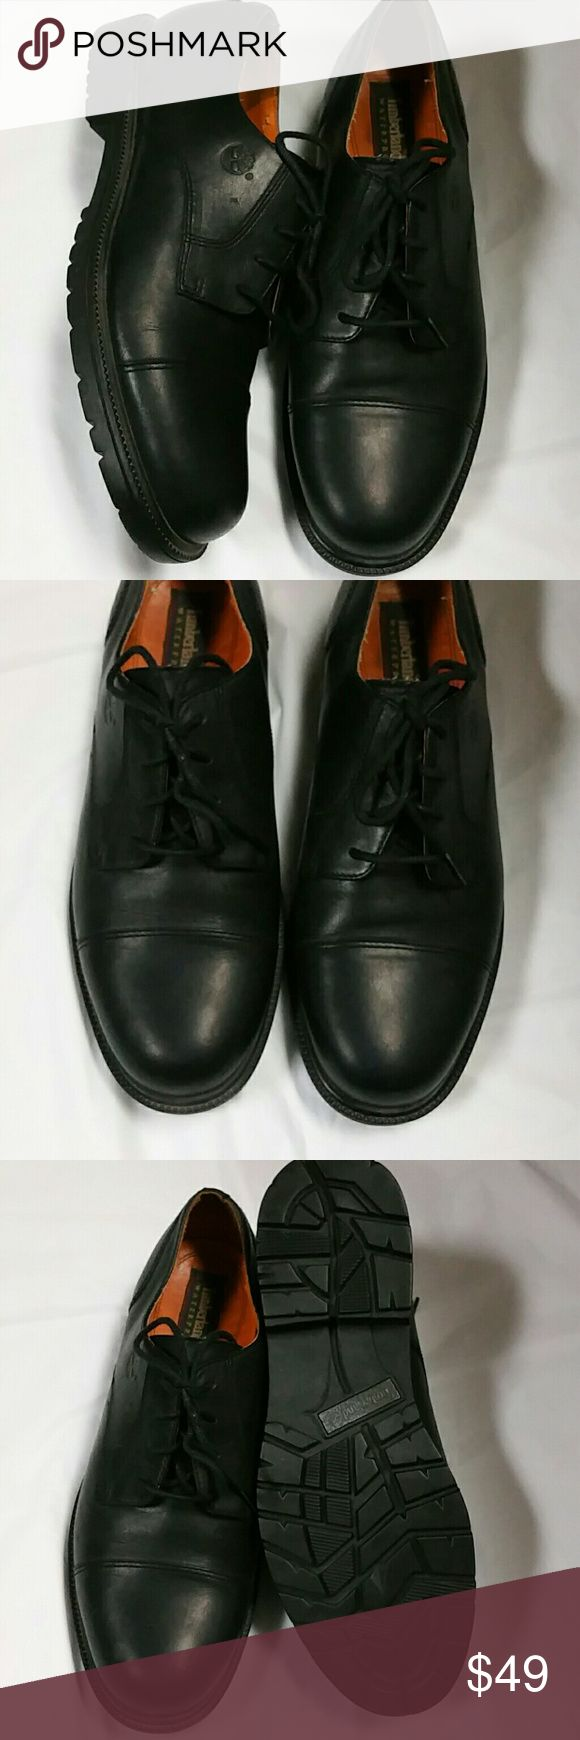 Timberland leather waterproof work shoes. Sz. 10.5 Black leather lace up oxfords, waterproof. Soft toe. Timberland style 93067. Very little wear on heel and sole. No scuffs on leather. Great pre owned condition. No flaws to note. Great for the man who dresses on the more casual side but needs a tough shoe that will get through anything. Size 10.5 Timberland Shoes